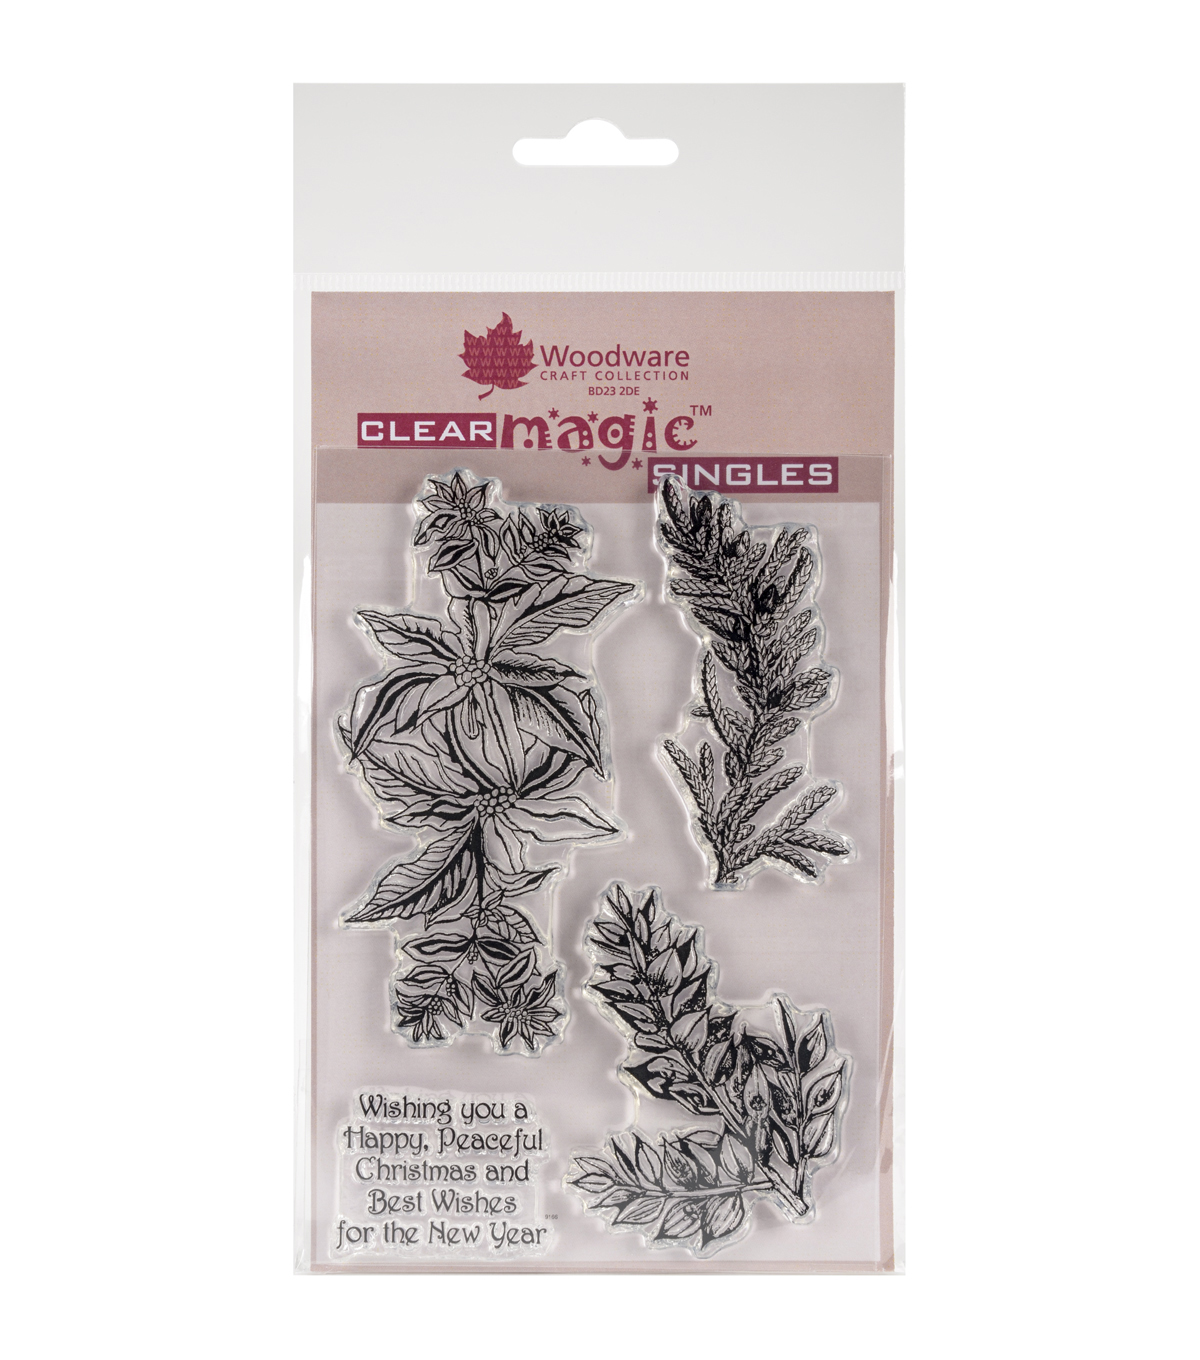 Woodware Craft Collection Clear Magic Stamp-Poinsettia & Spruce